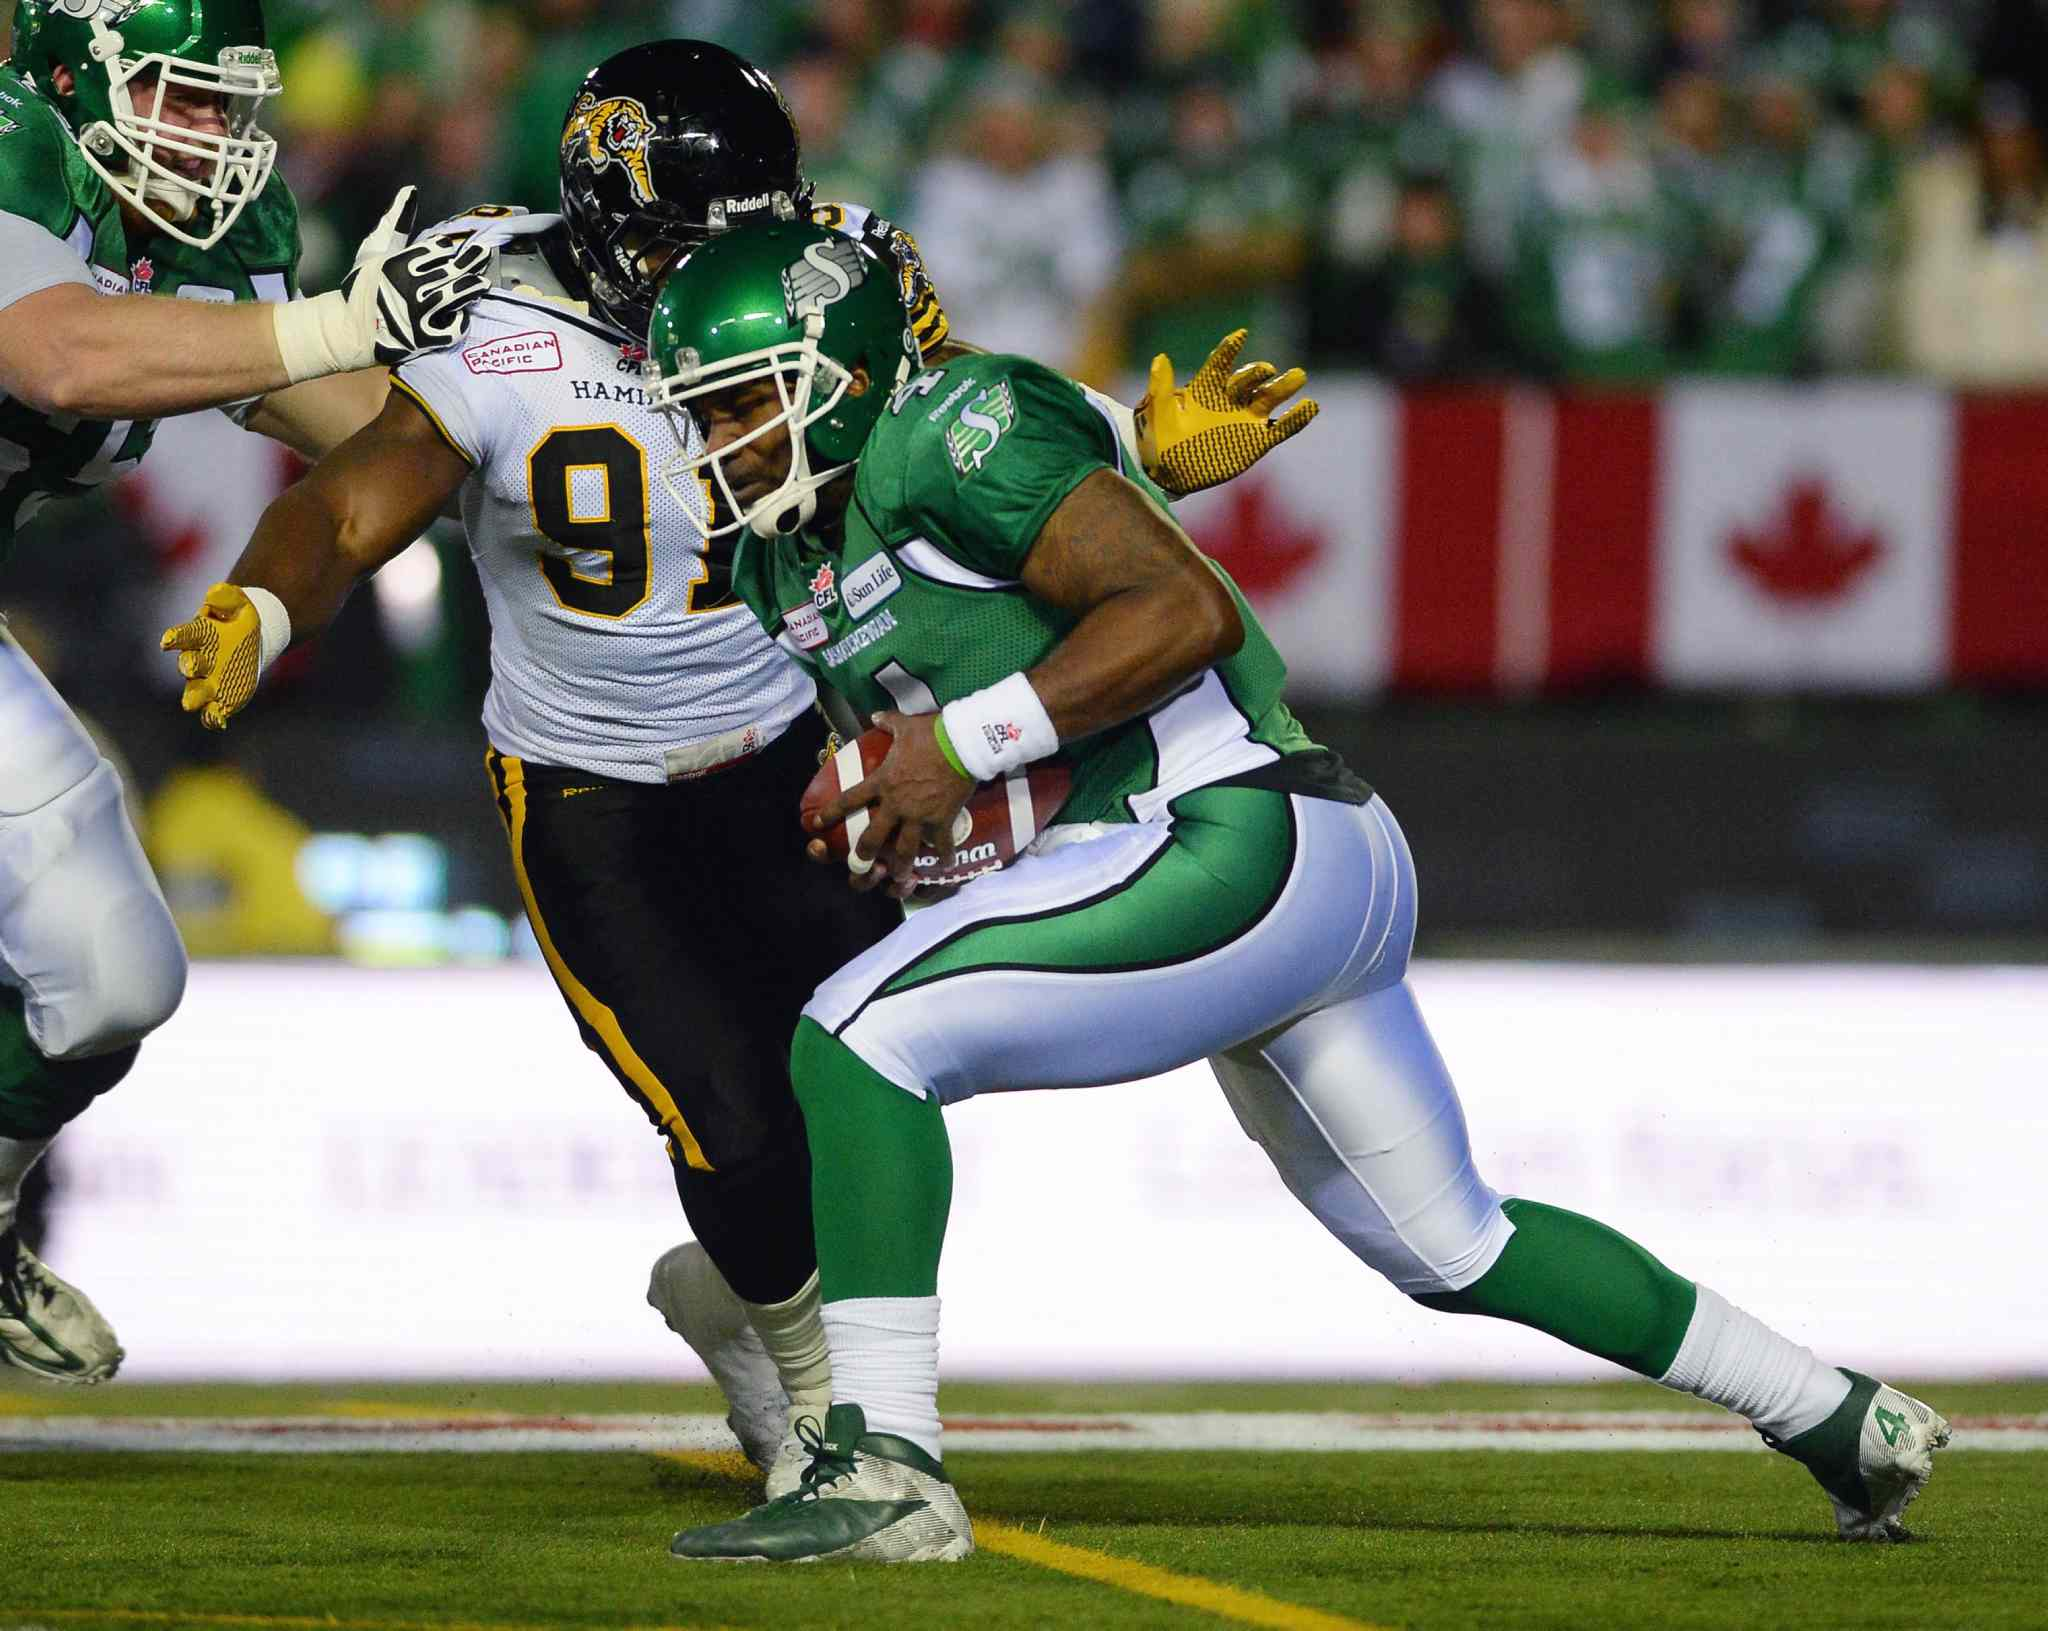 Saskatchewan Roughriders quarterback Darian Durant is tackled by Hamilton Tiger-Cats defensive lineman Brandon Boudreaux during the first quarter.